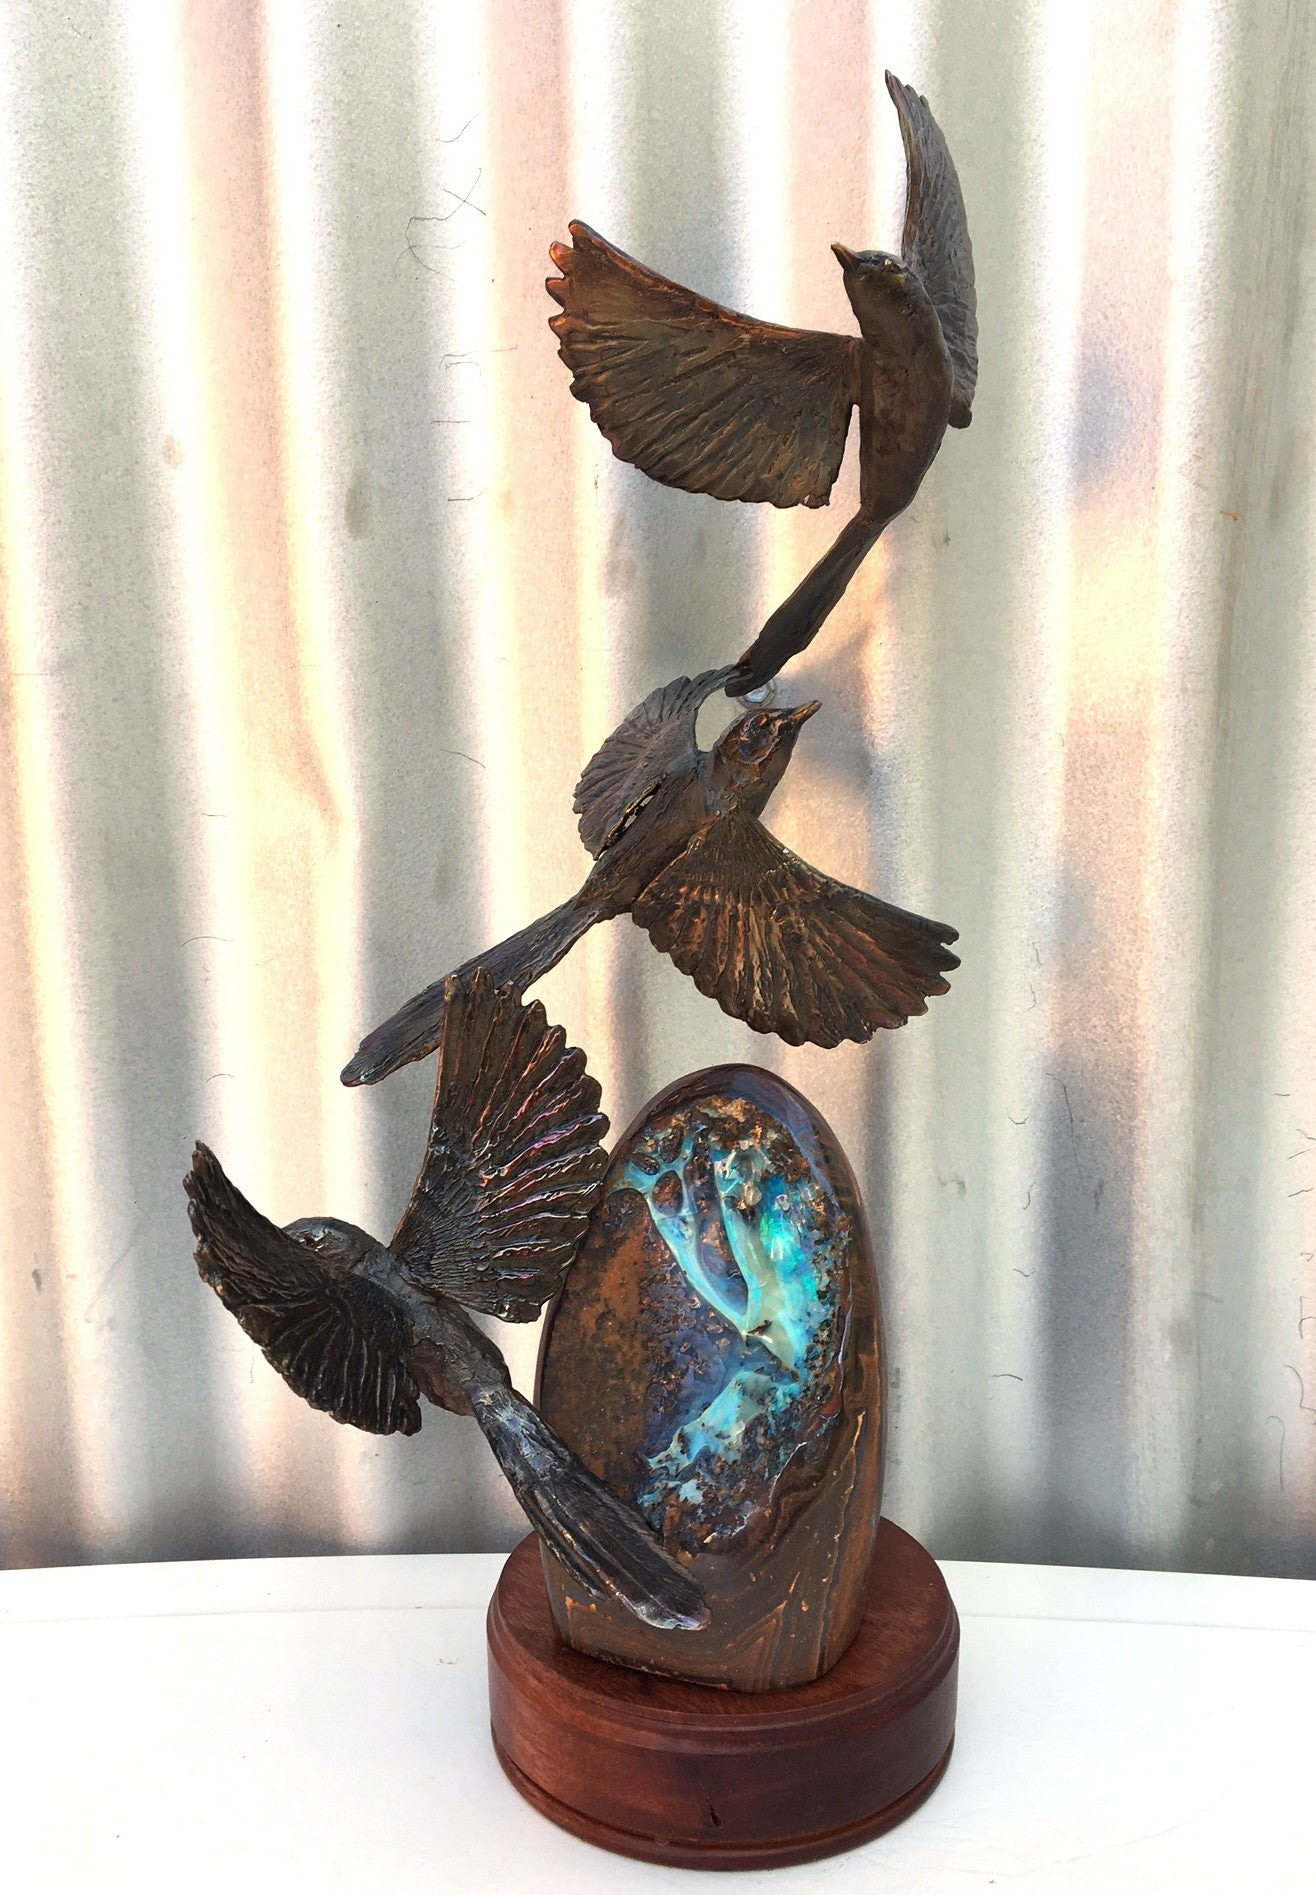 Green / Blue Boulder Opal with Bronze Wrens in Flight